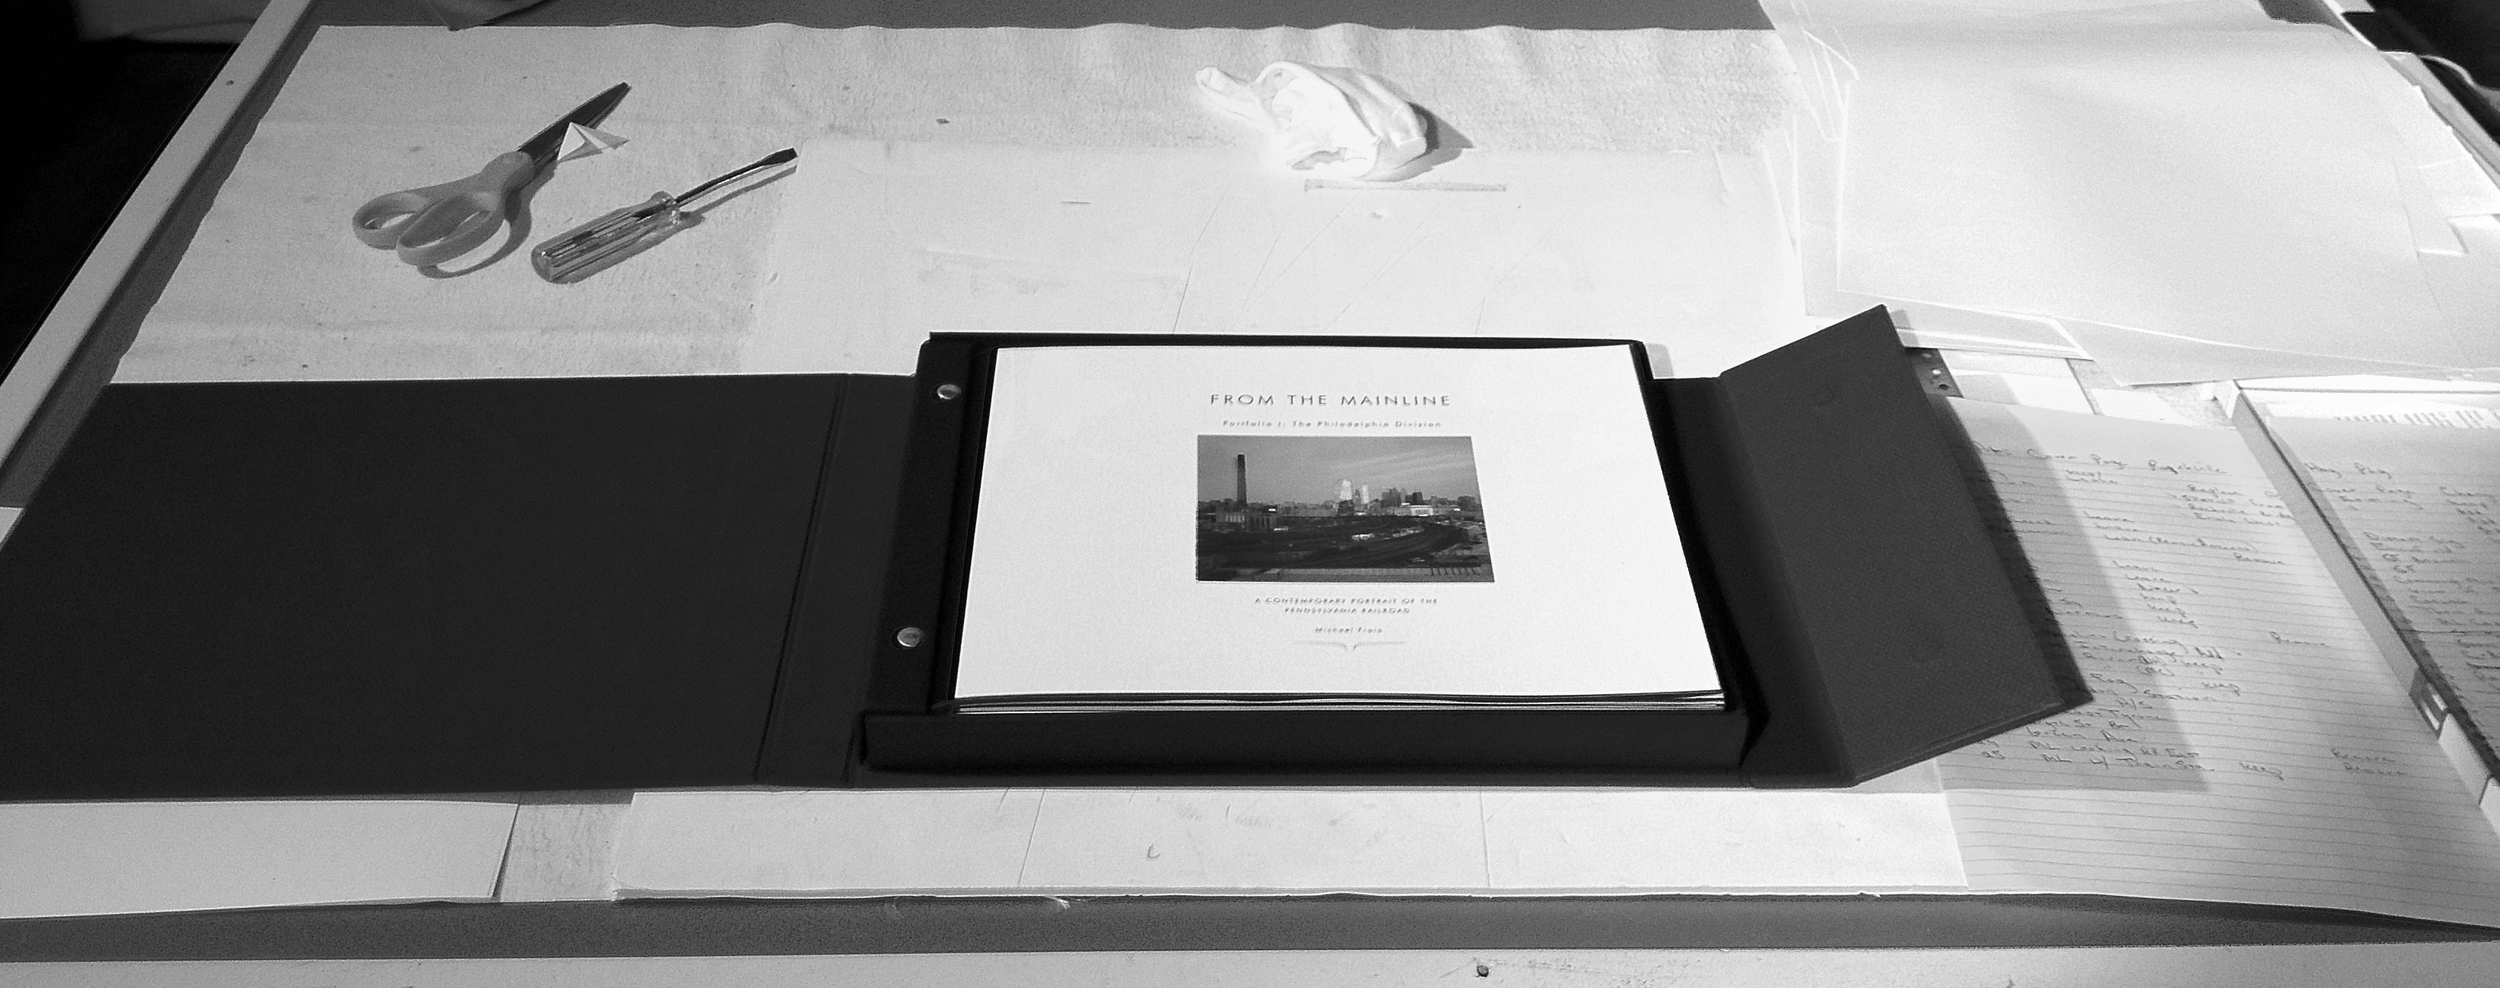 Finished product (1 of3) of over a week of average three hours of sleep to build three new portfolios of the Mainline Project for the trip to Lake Forest, Illinois  for this years Center for Railroad Photography and Art Annual Conference!